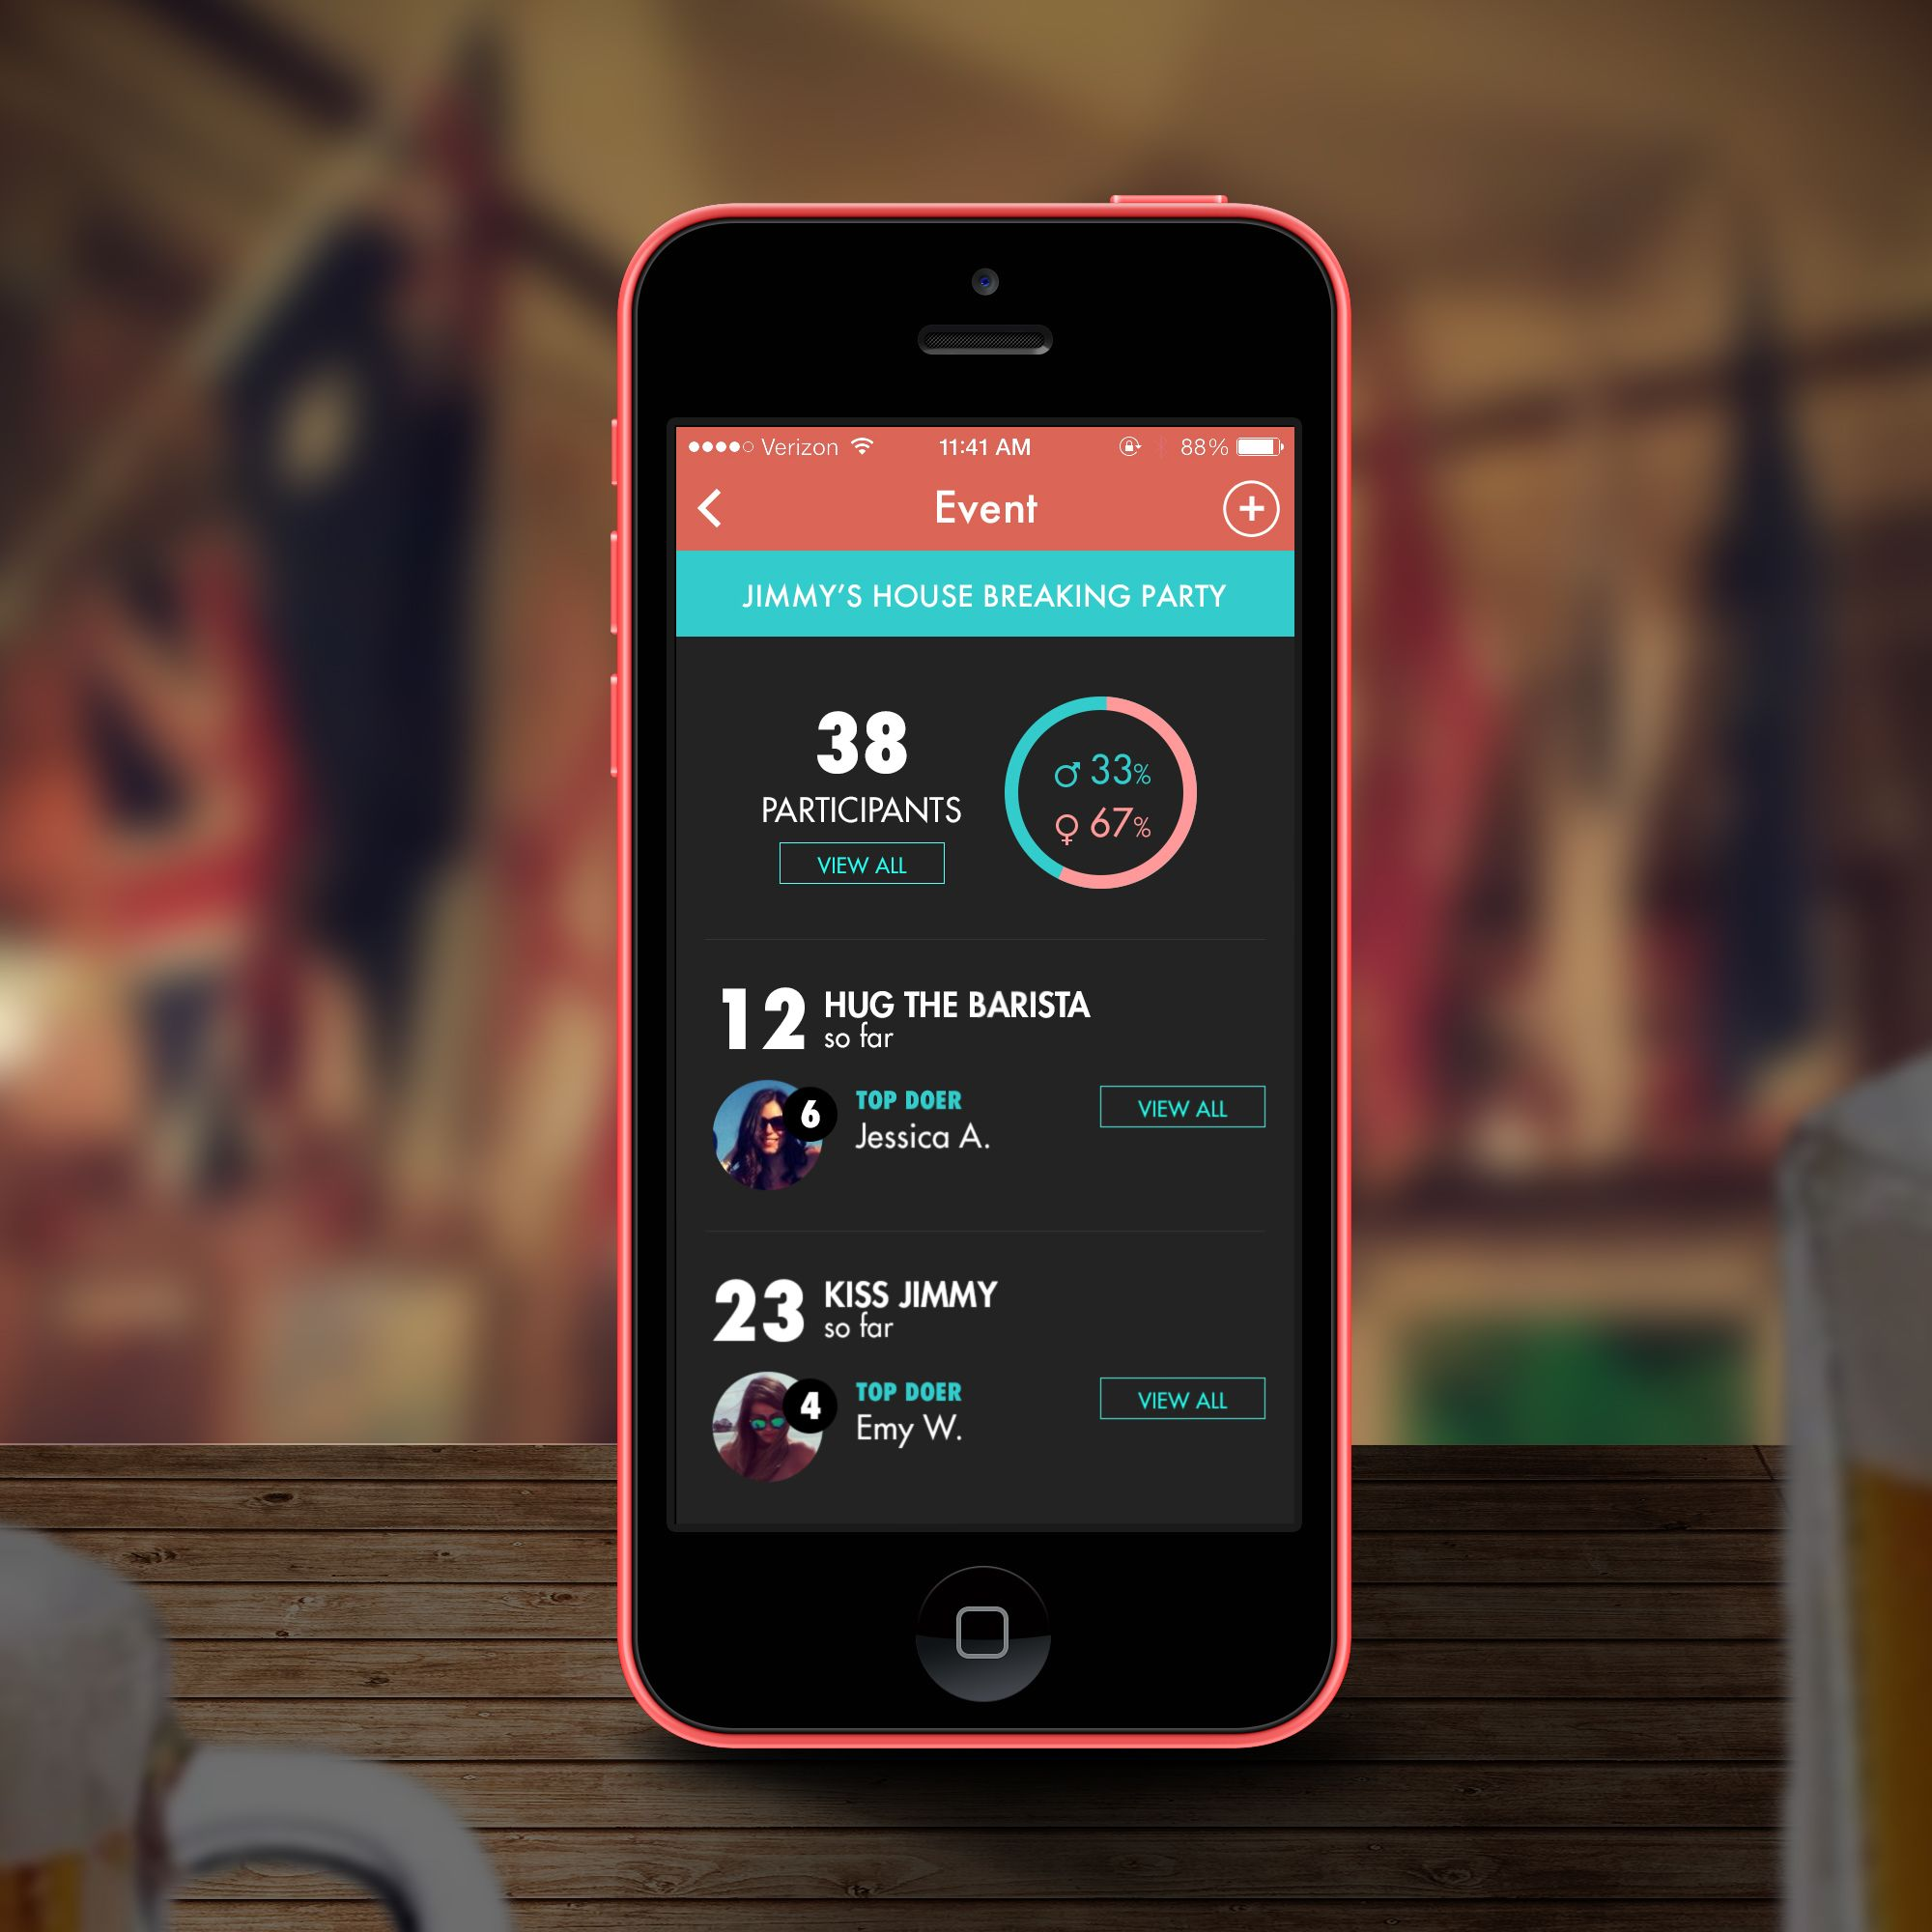 Mobile App Design By Marcor Potd99 12 14 2013 Colors Social Events Mobile App Design Mobile App App Design